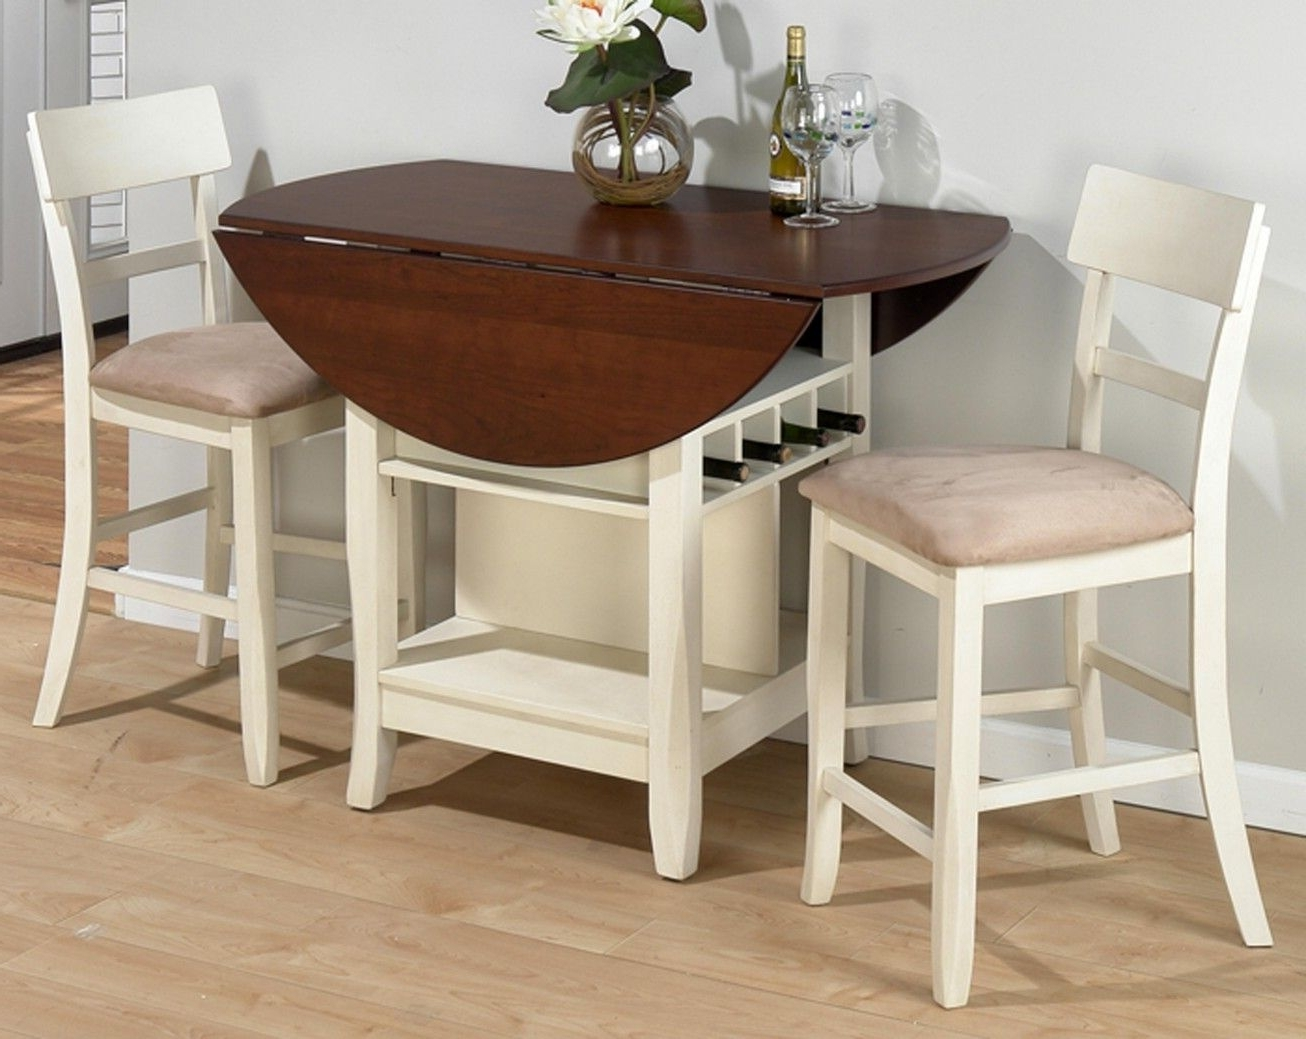 Statue Of Compact Dining Space Arrangement With Drop Leaf Dining Regarding Trendy Compact Dining Room Sets (View 18 of 25)